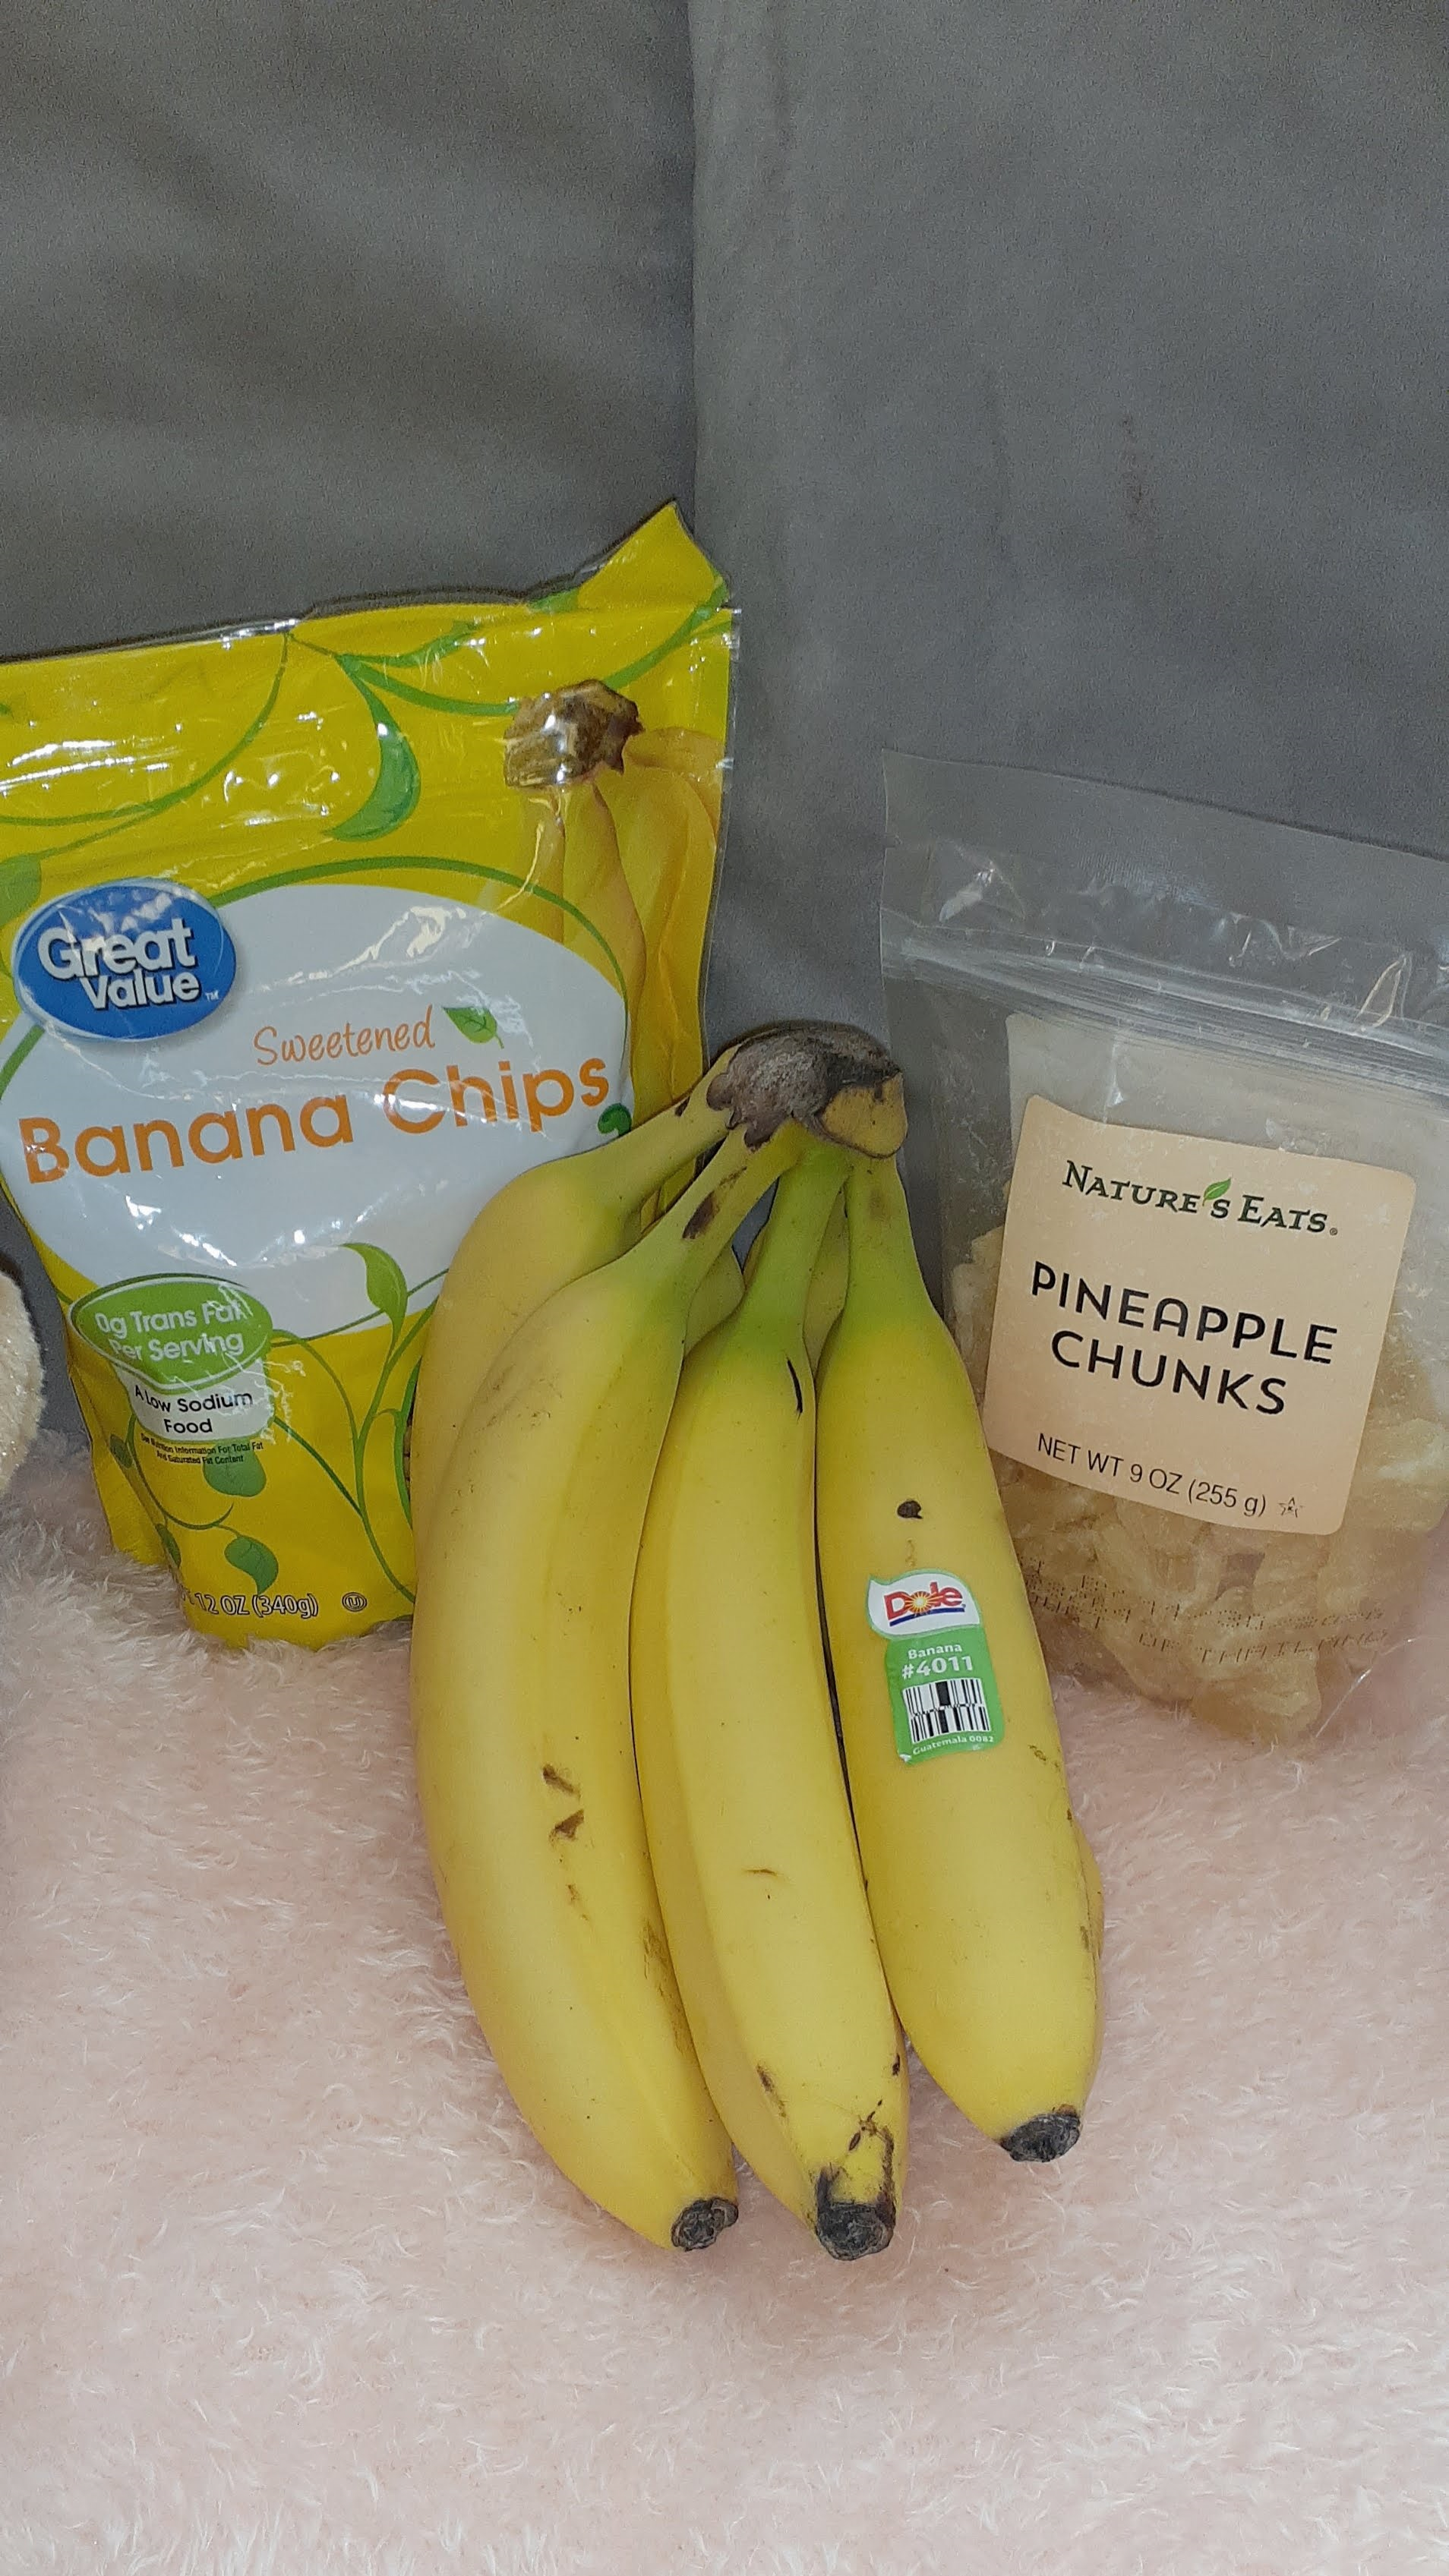 A picture of bananas, a box of granola bars, a bag of caramel rice cakes, 2 bags of pretzel chips, a jar of almond butter, a bag of almonds and dried pineapples chunks on a beige marble window sill.